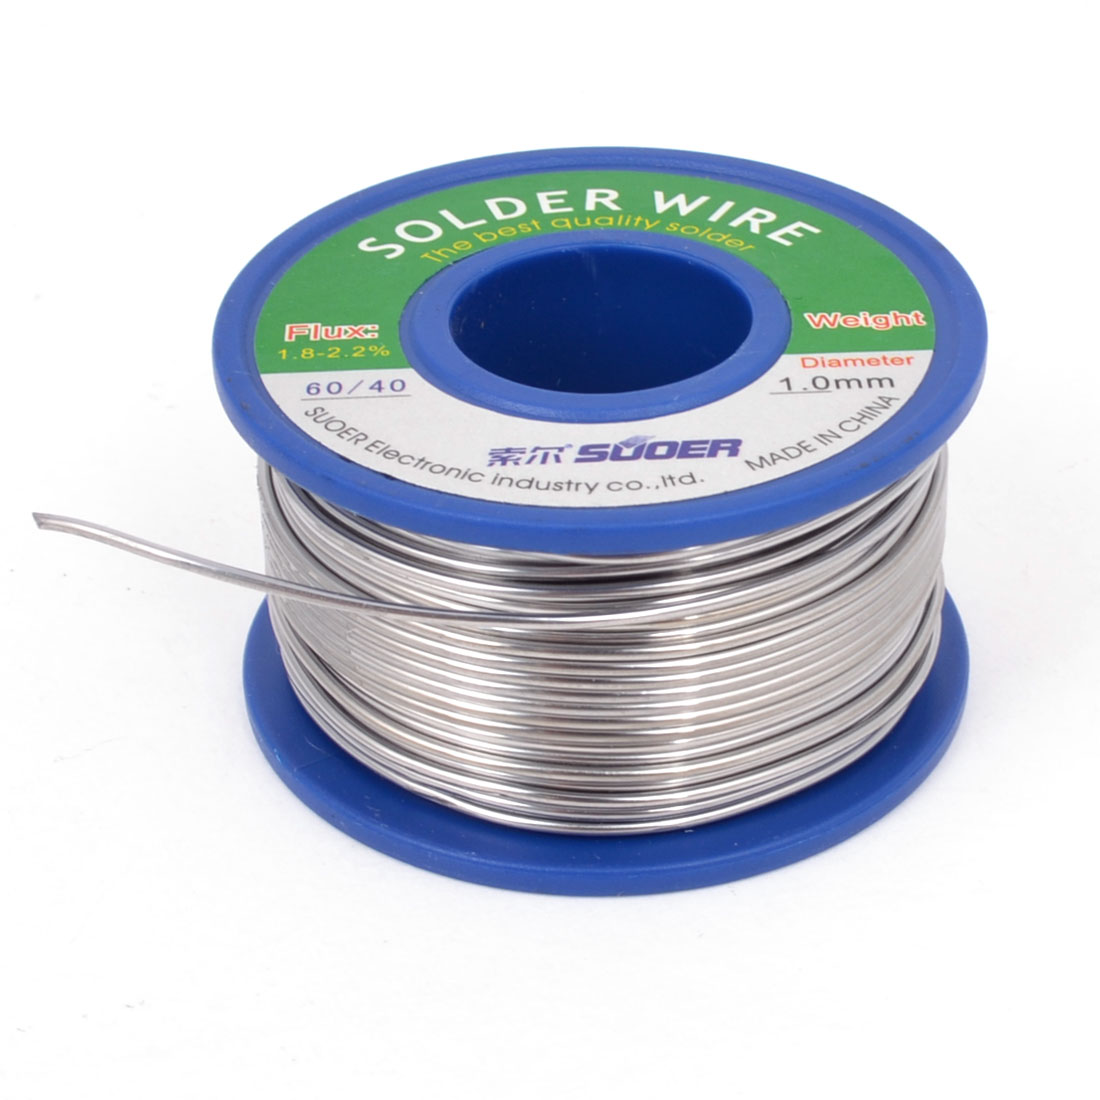 1.0mm Diameter 200g 60/40 Tin Lead Solder Soldering Wire Spool Reel